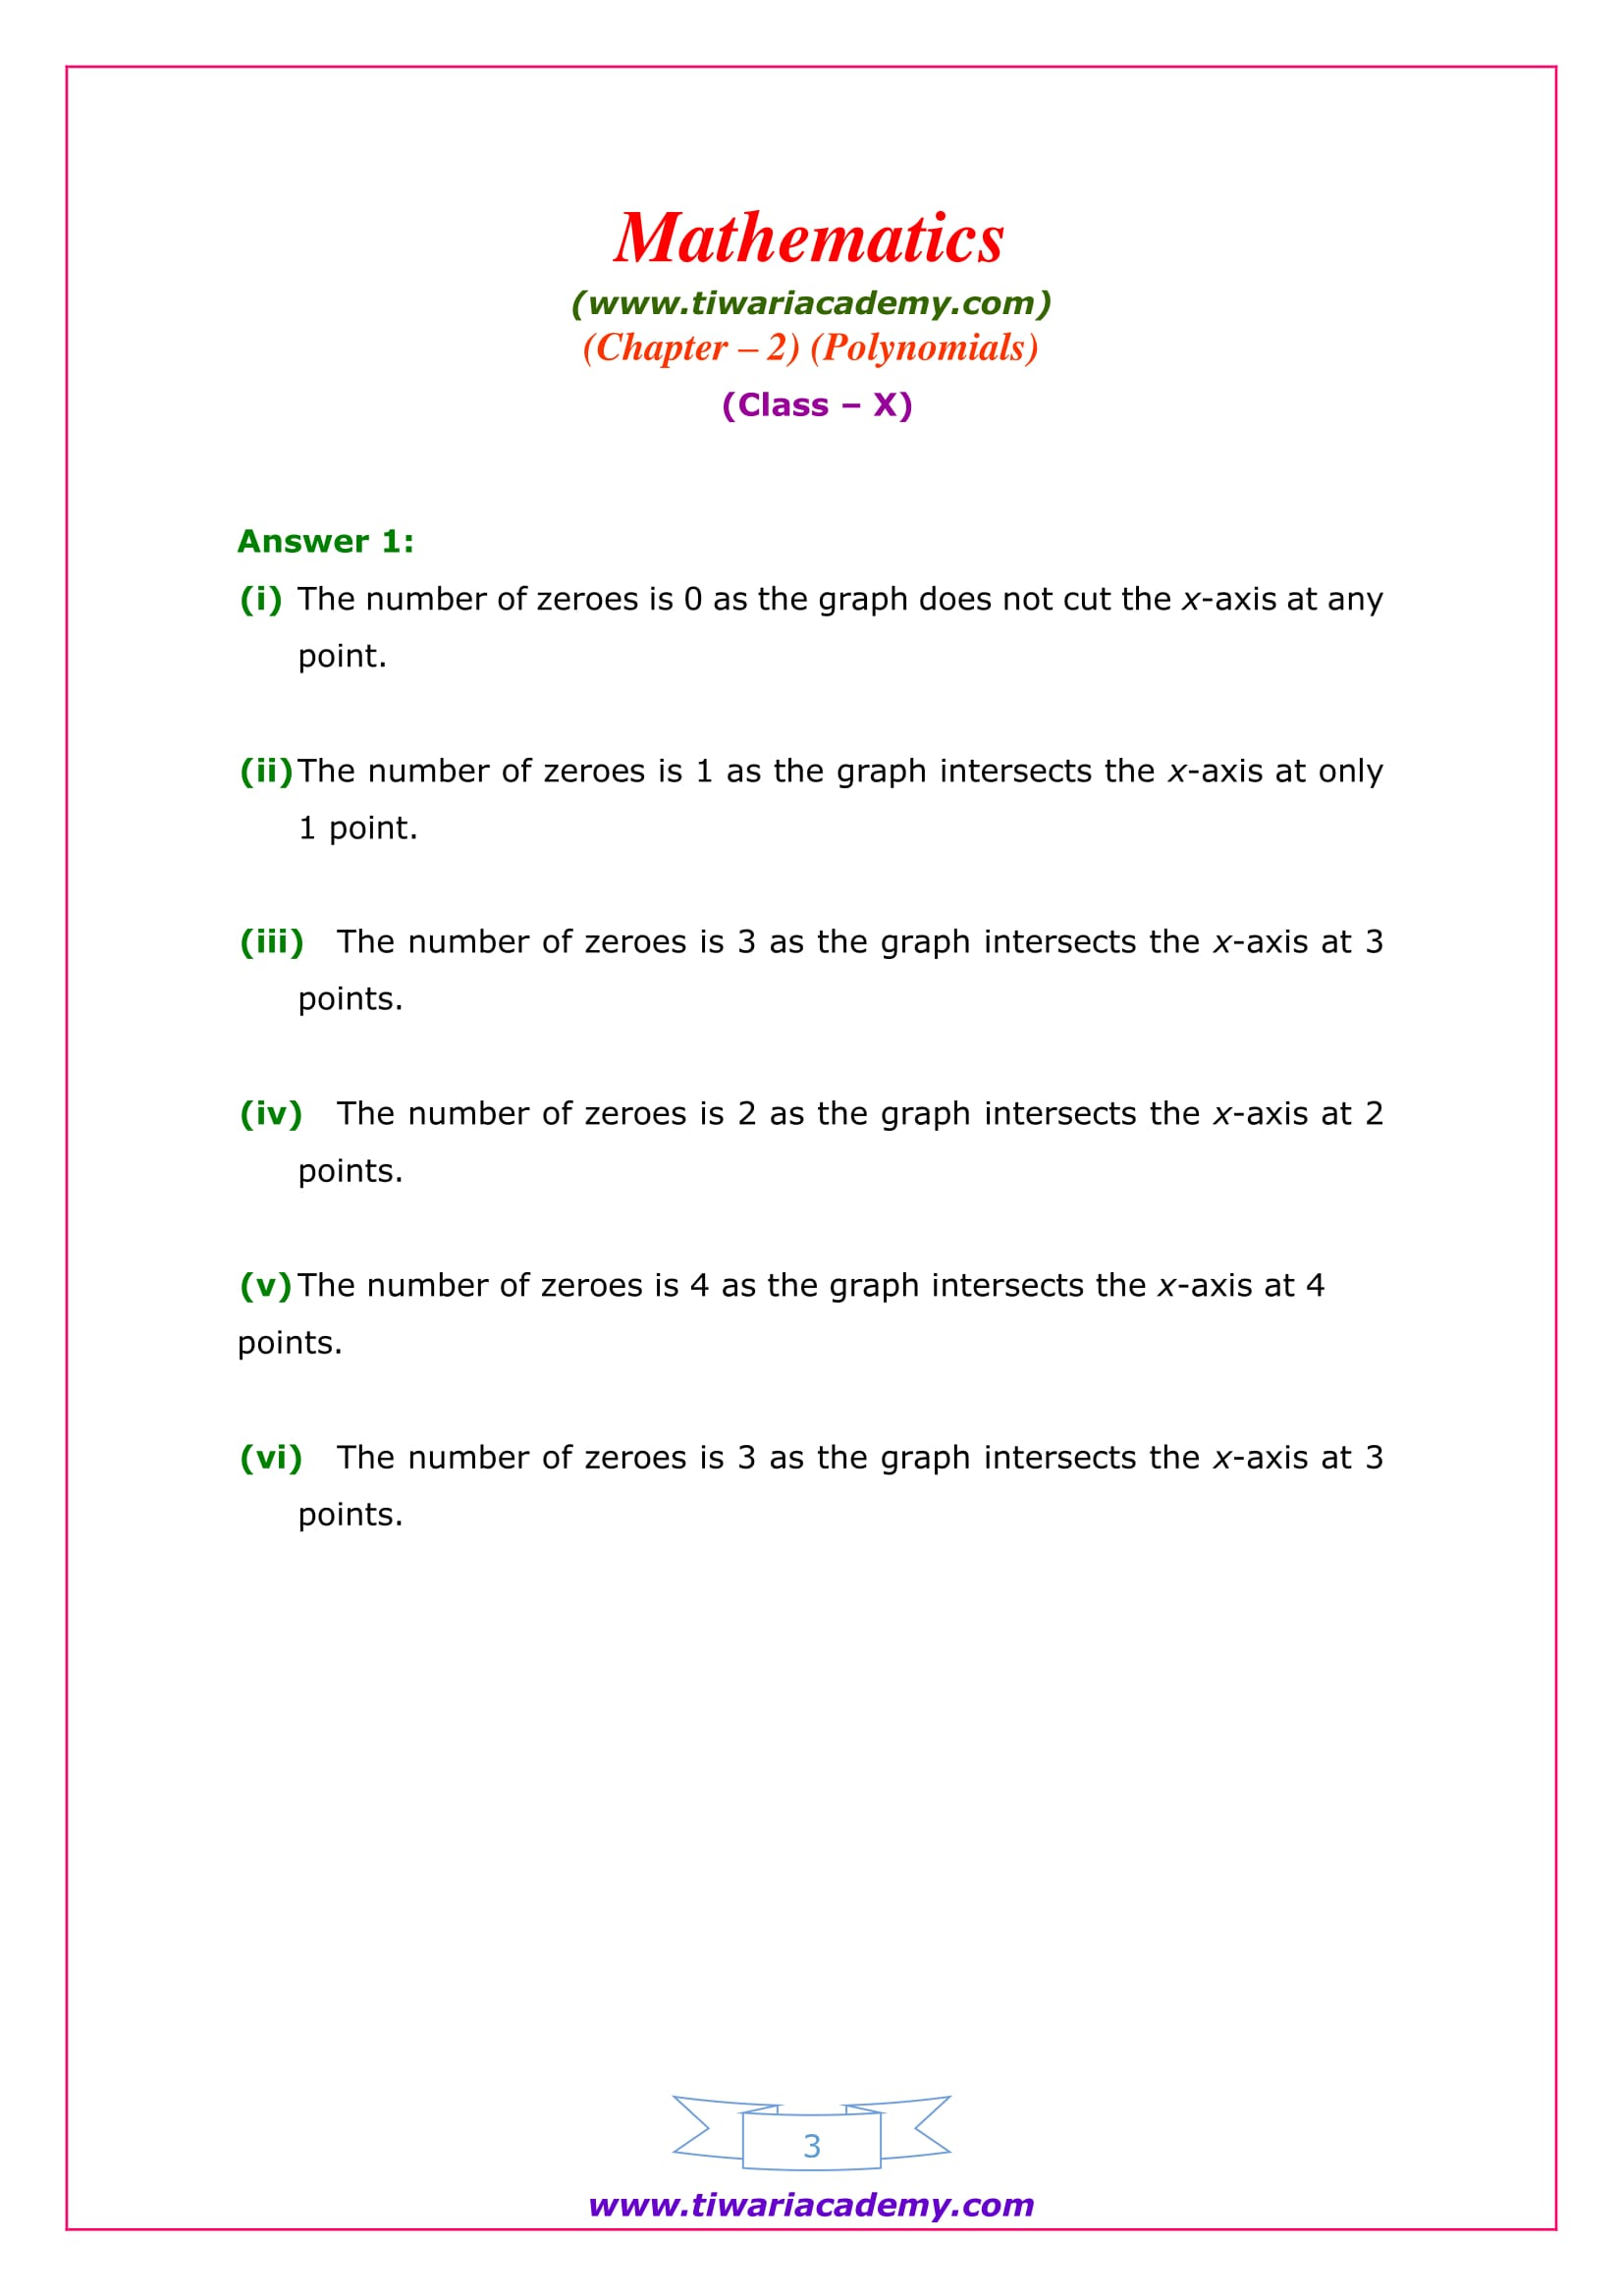 NCERT Solutions for Class 10 Maths Chapter 2 Exercise 2.1 Answer 1